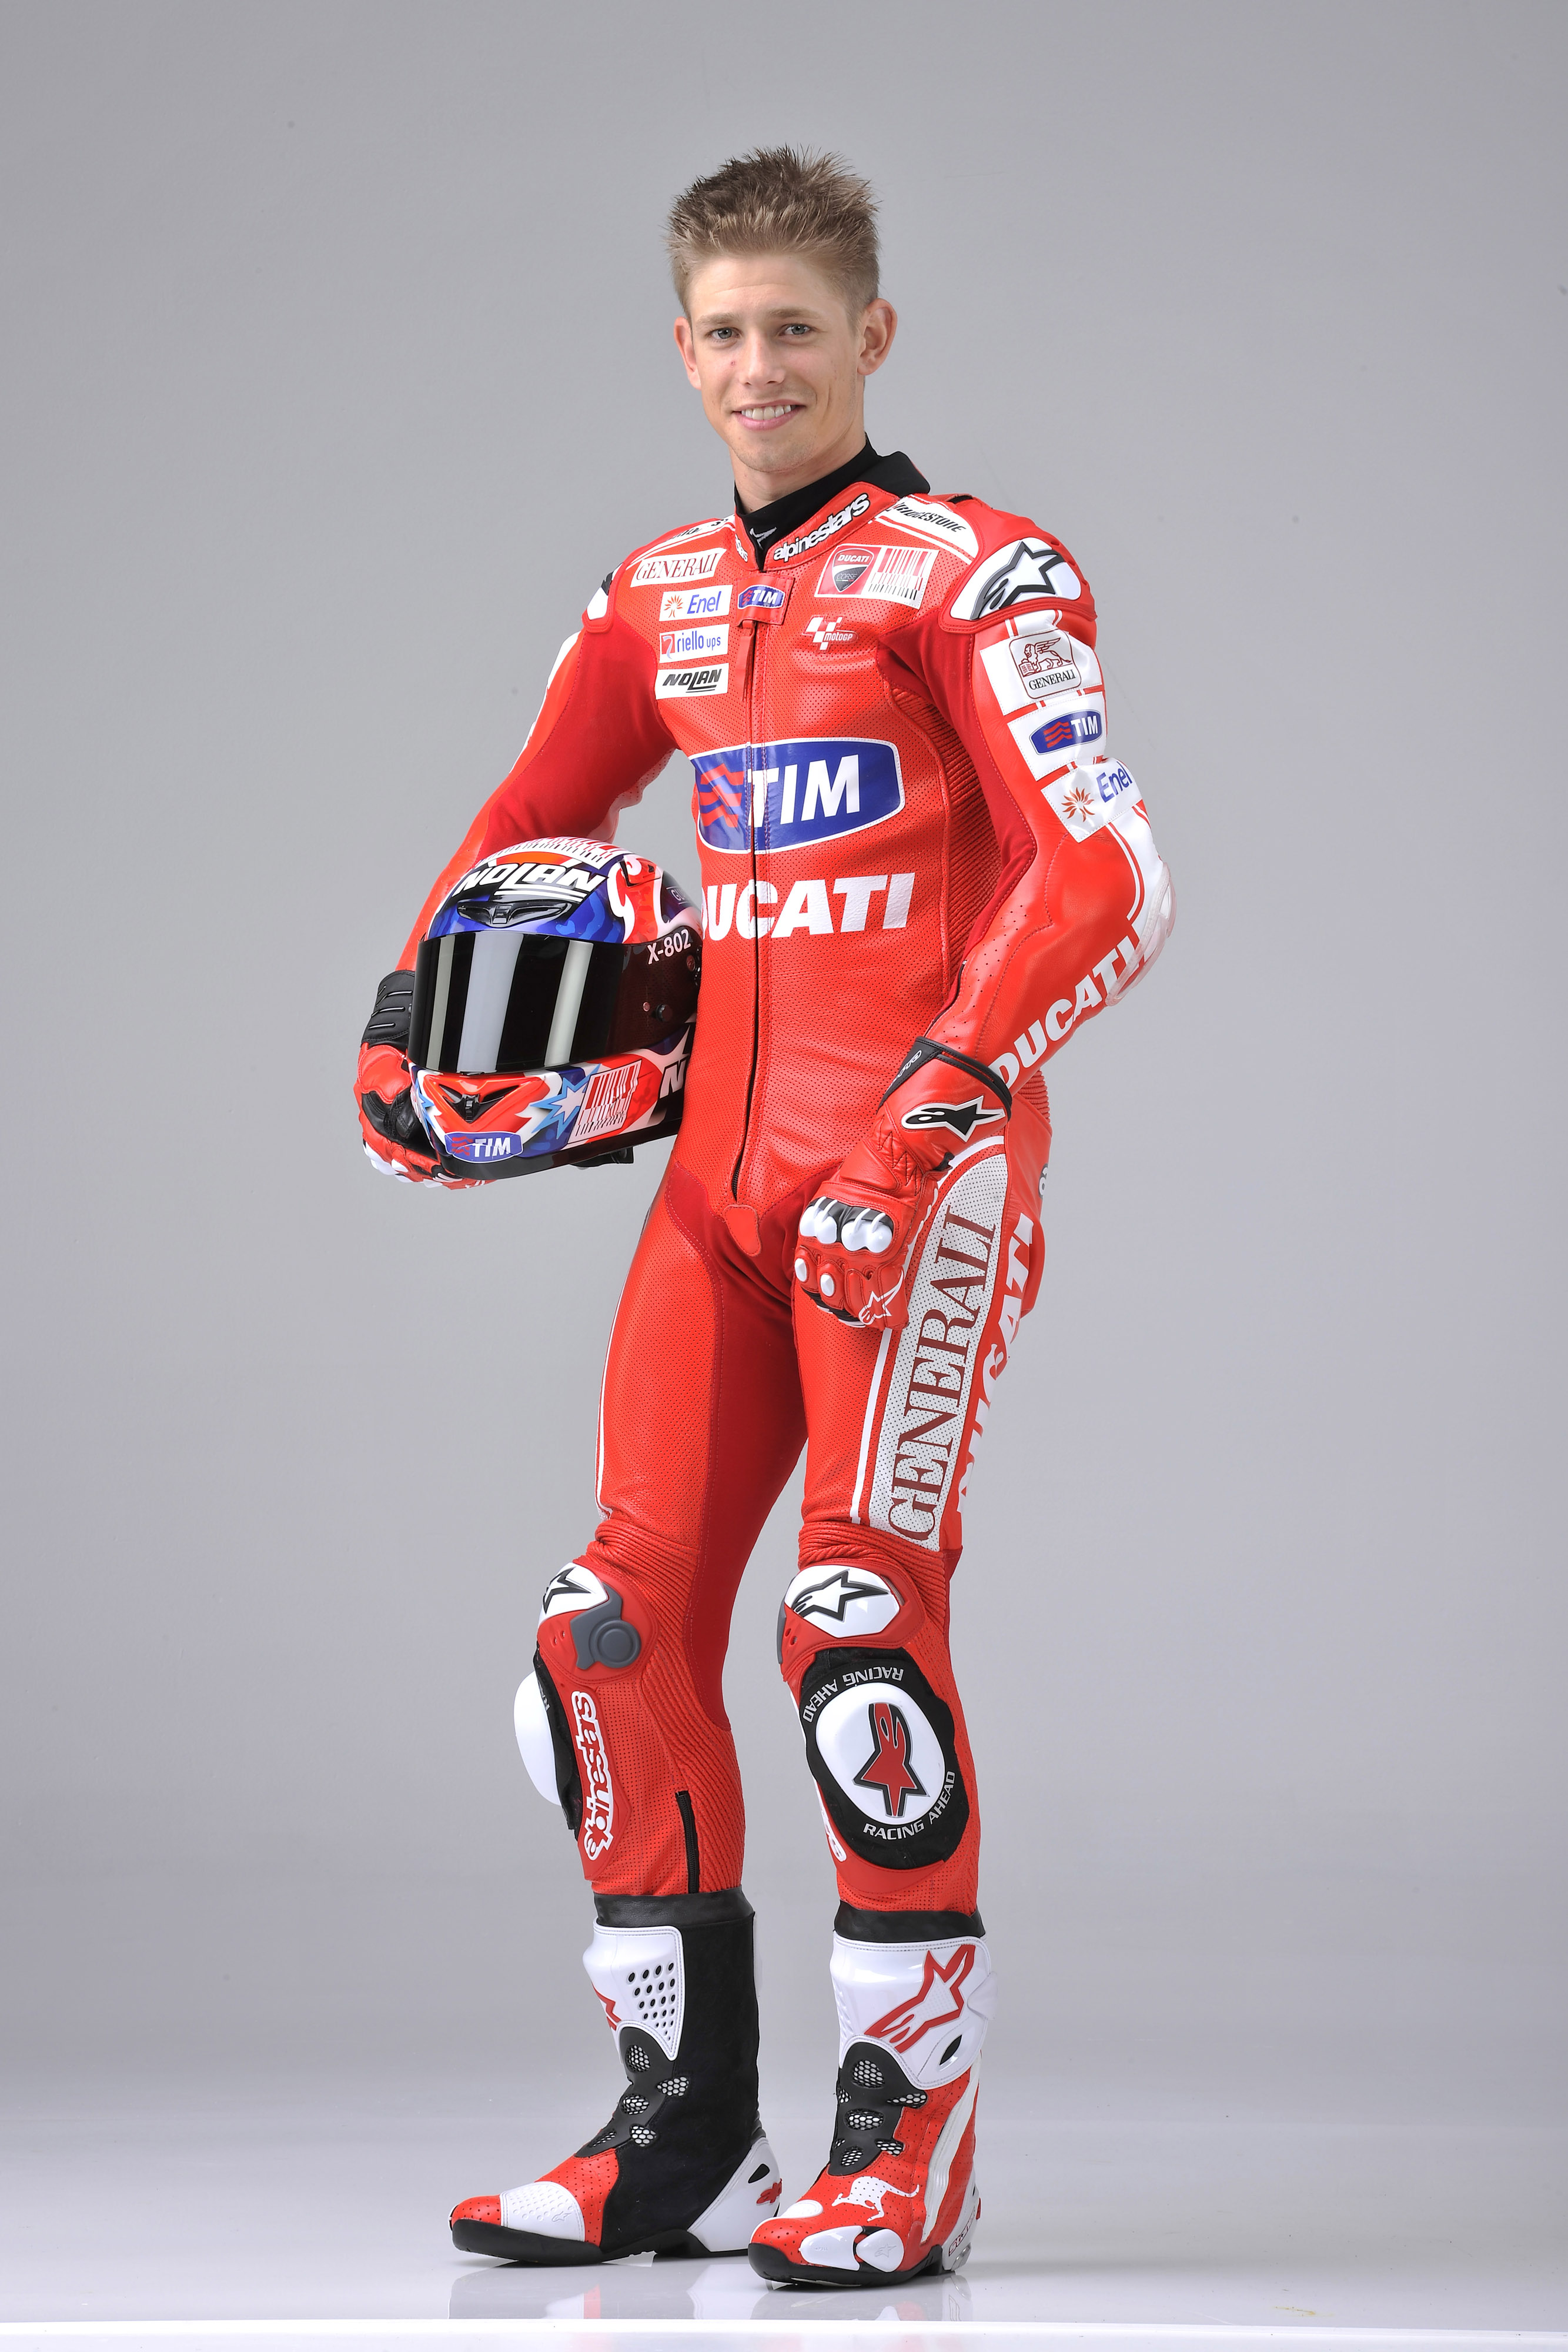 Casey Stoner, the two-time MotoGP world champ who left MotoGP to go fishing, is back with Ducati as their brand ambassador and test rider